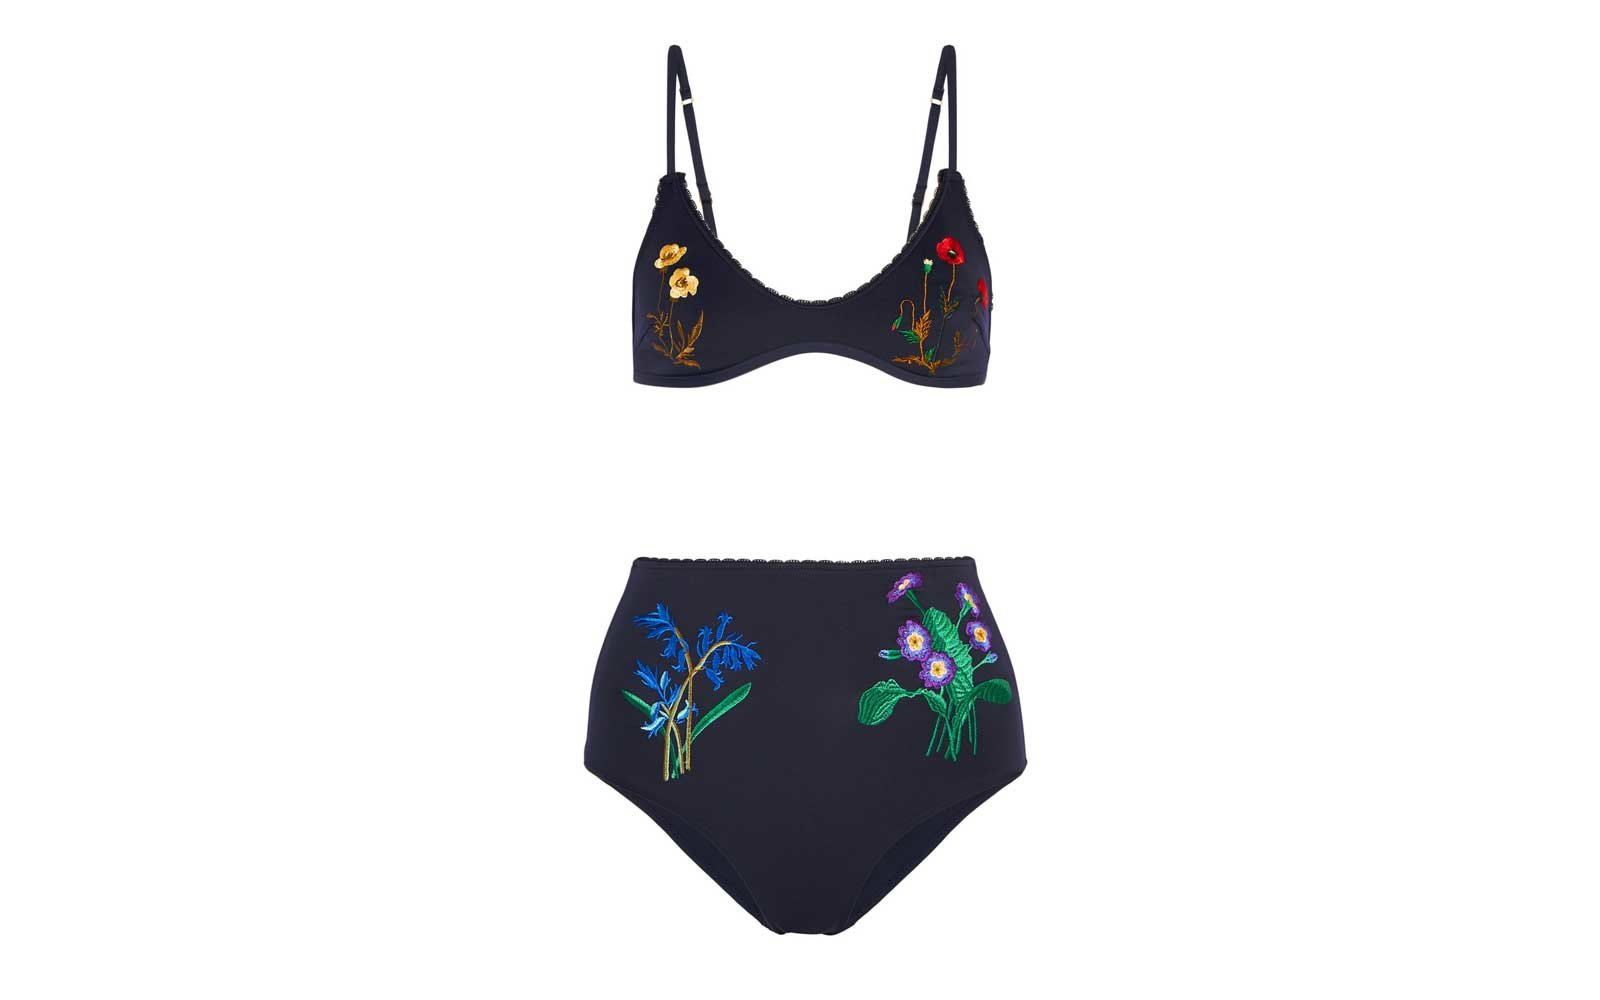 Stella Mccartney High Waist Swimsuit